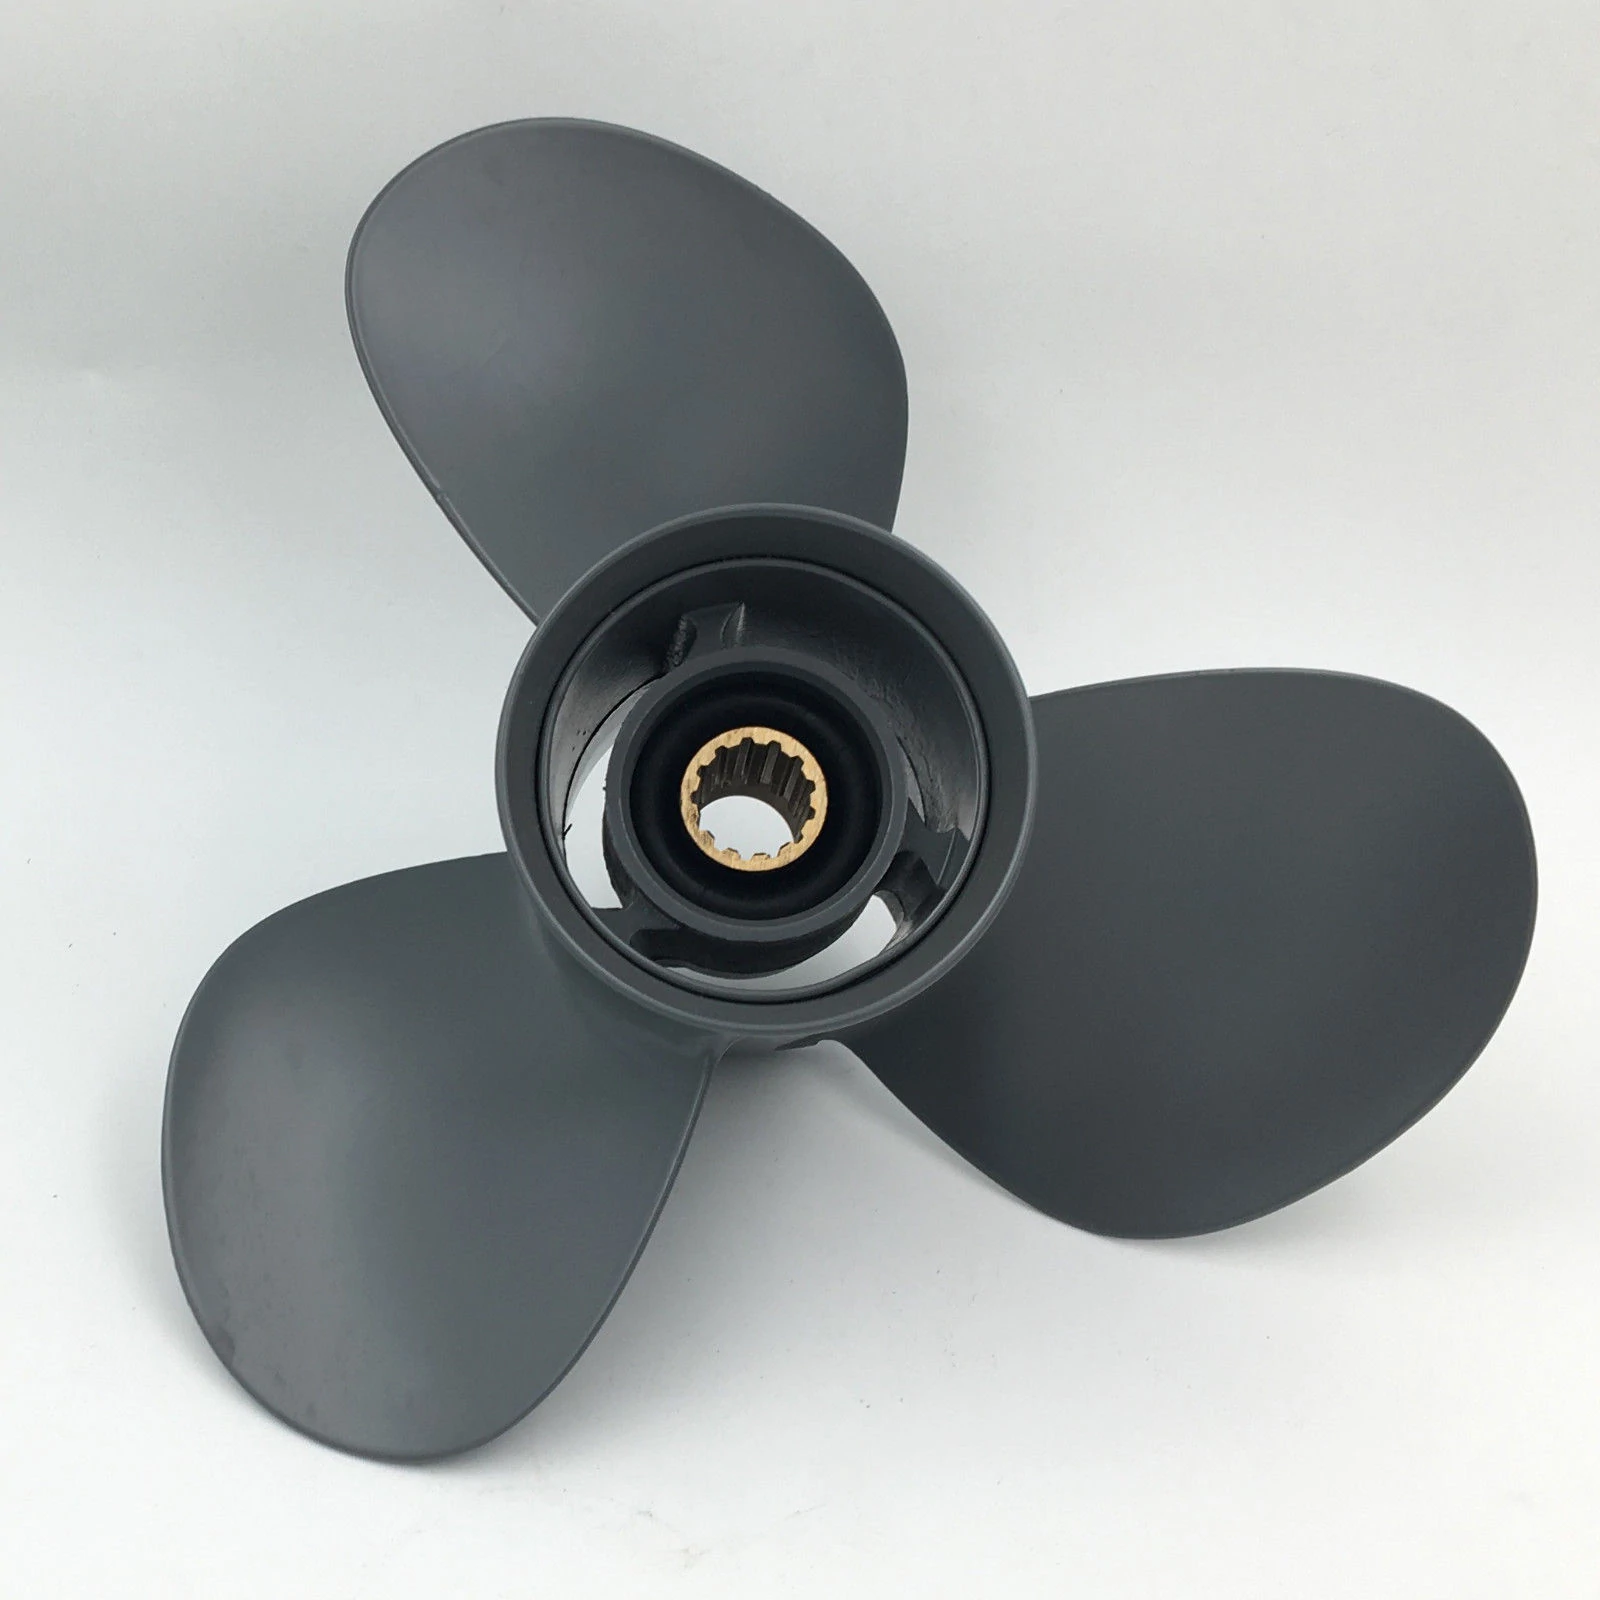 Propeller 11 1//4 x 13 for Honda Outboard 35 40 45 50 60 hp Pitch 13 BF50 BF60